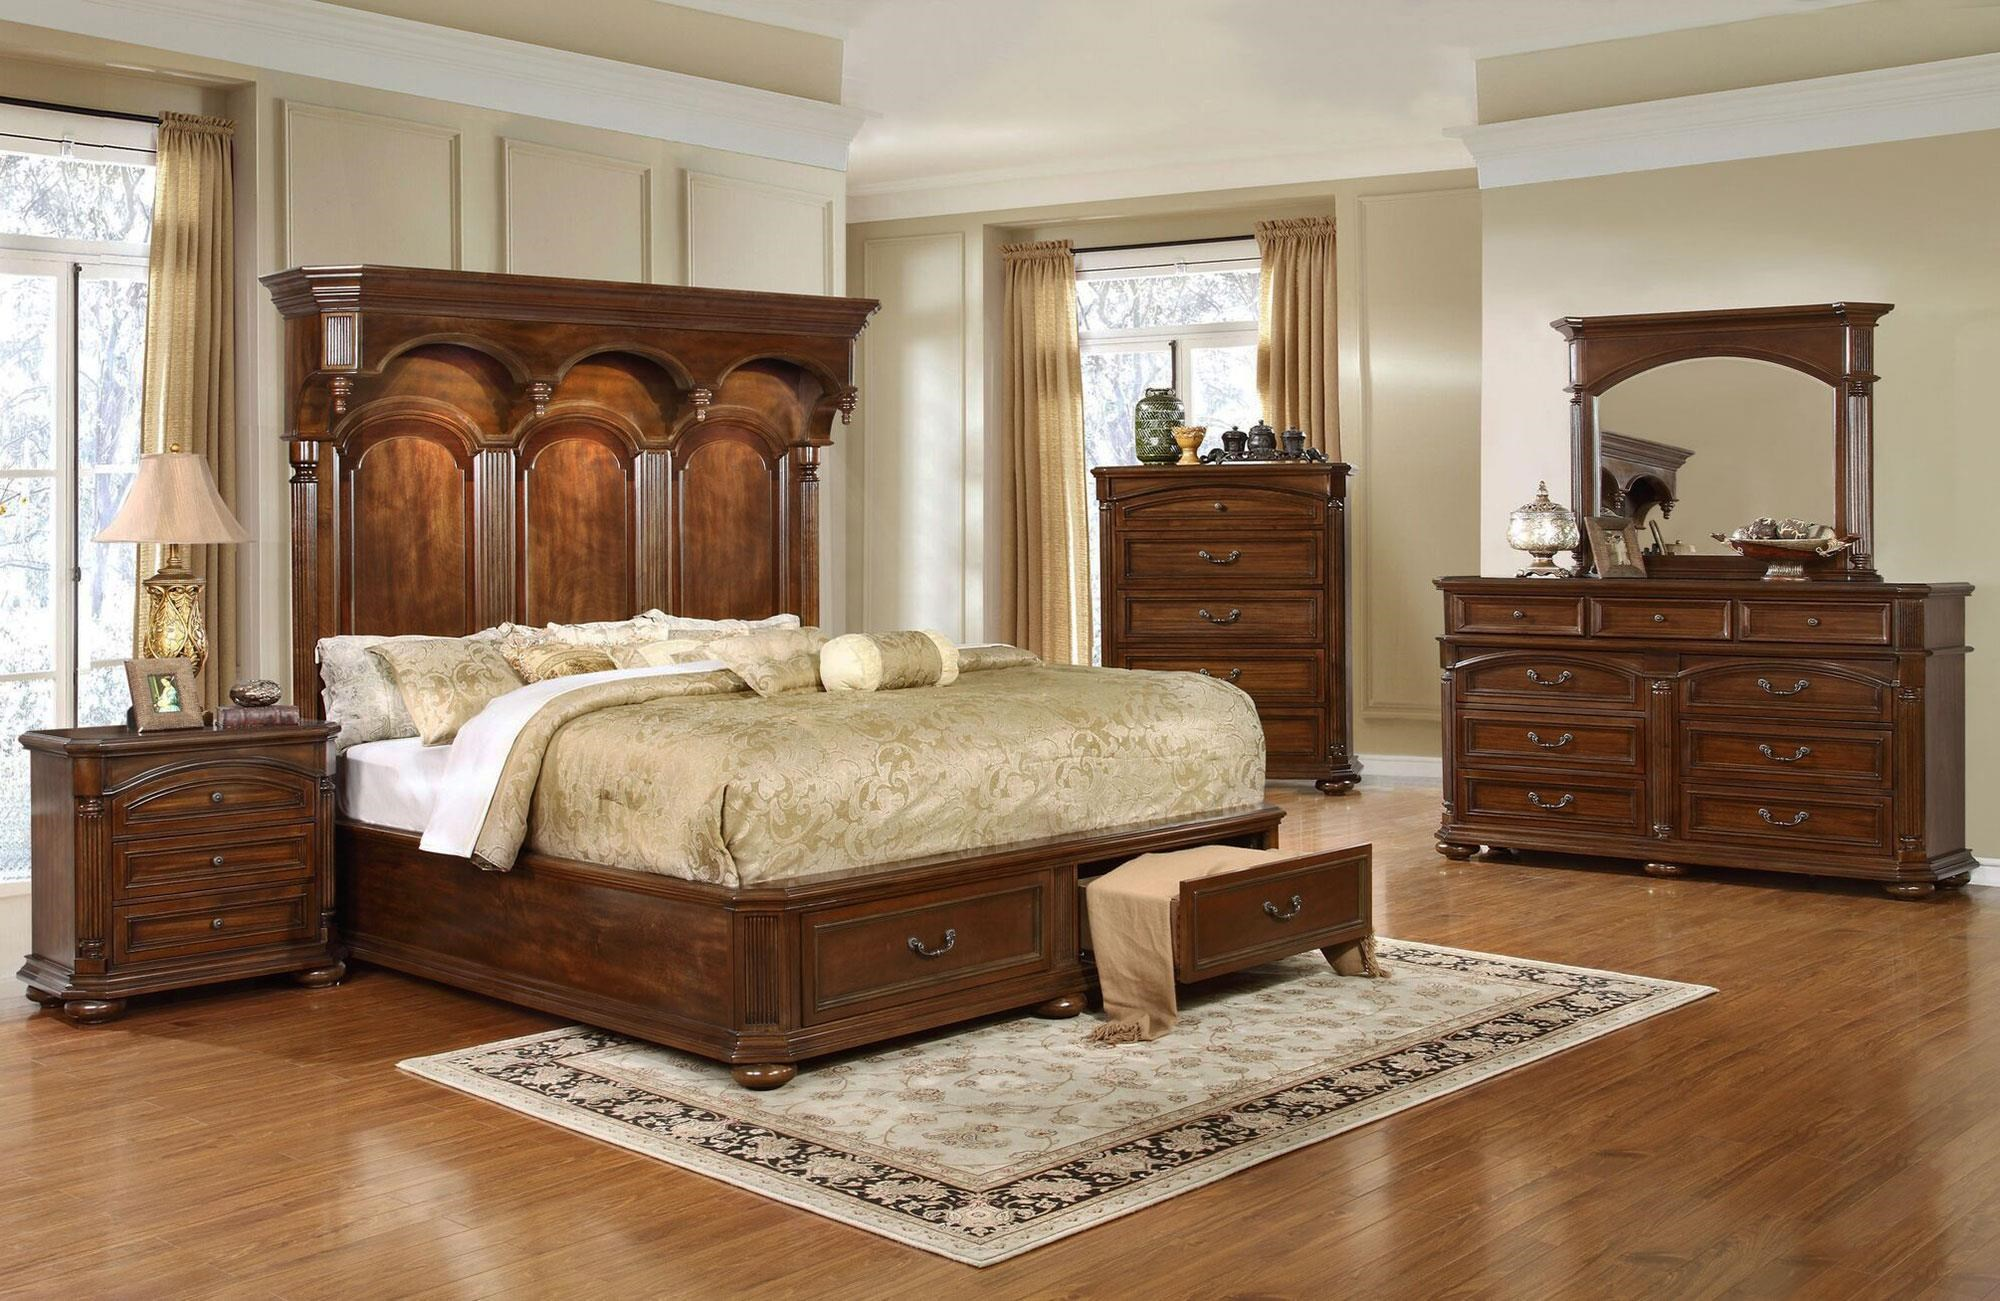 Lifestyle Empire 5PC Queen Storage Bedroom Set - Item Number: C6258A-5PC-QBR